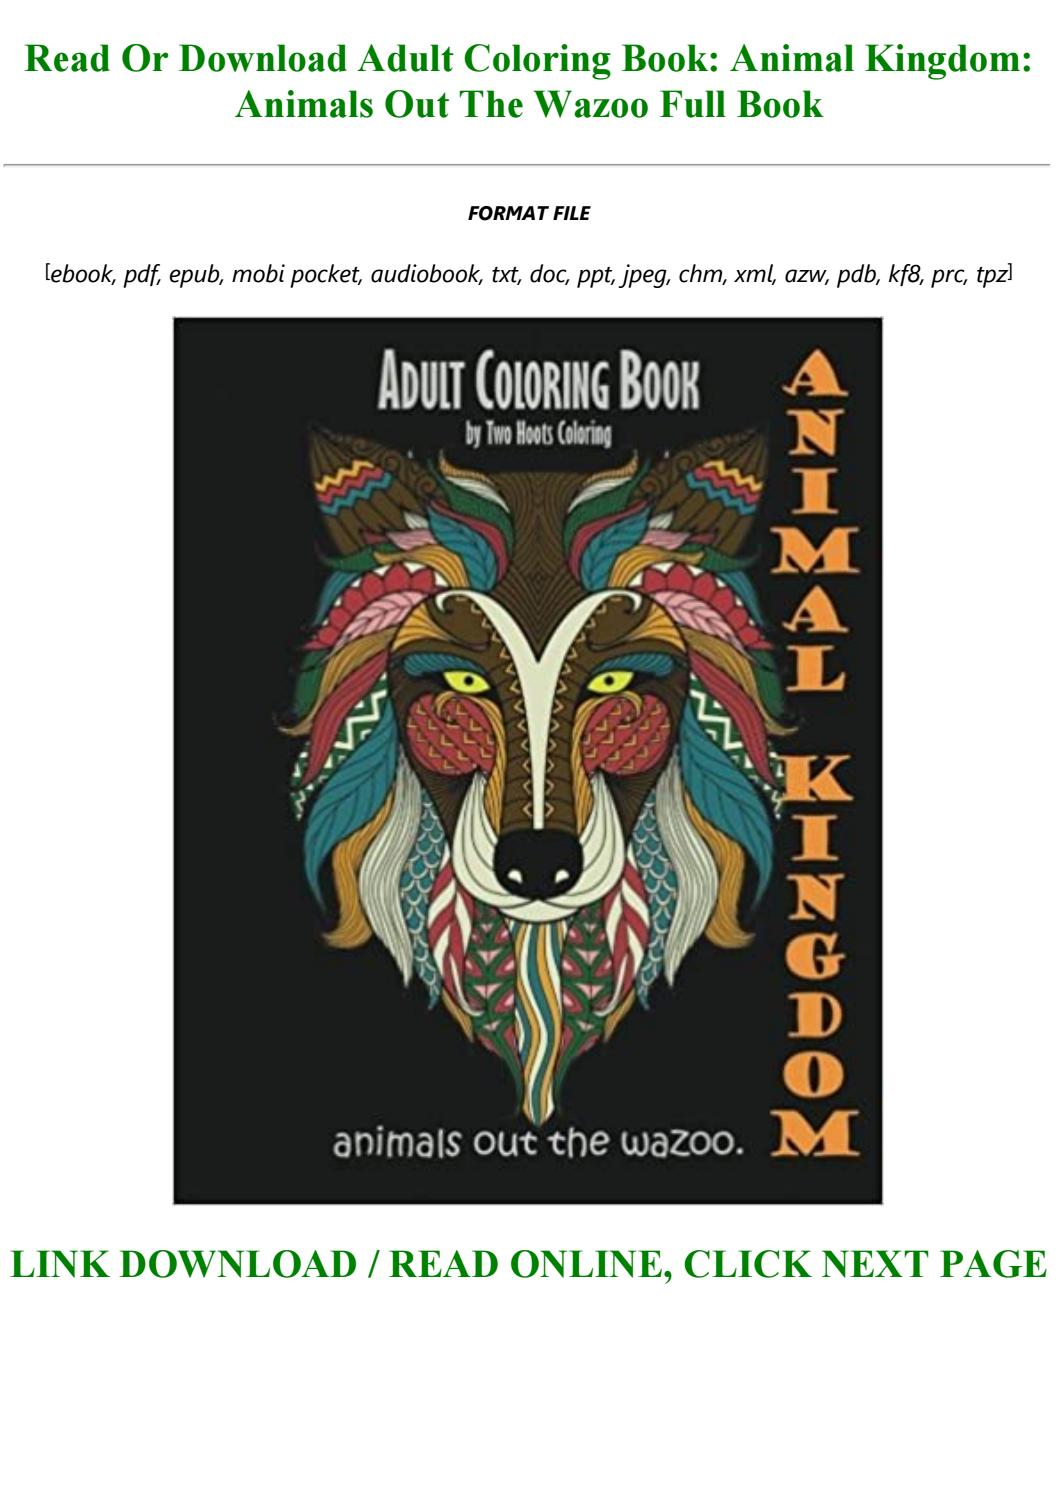 Disney Animal Kingdom Coloring Pages - Get Coloring Pages | 1497x1058